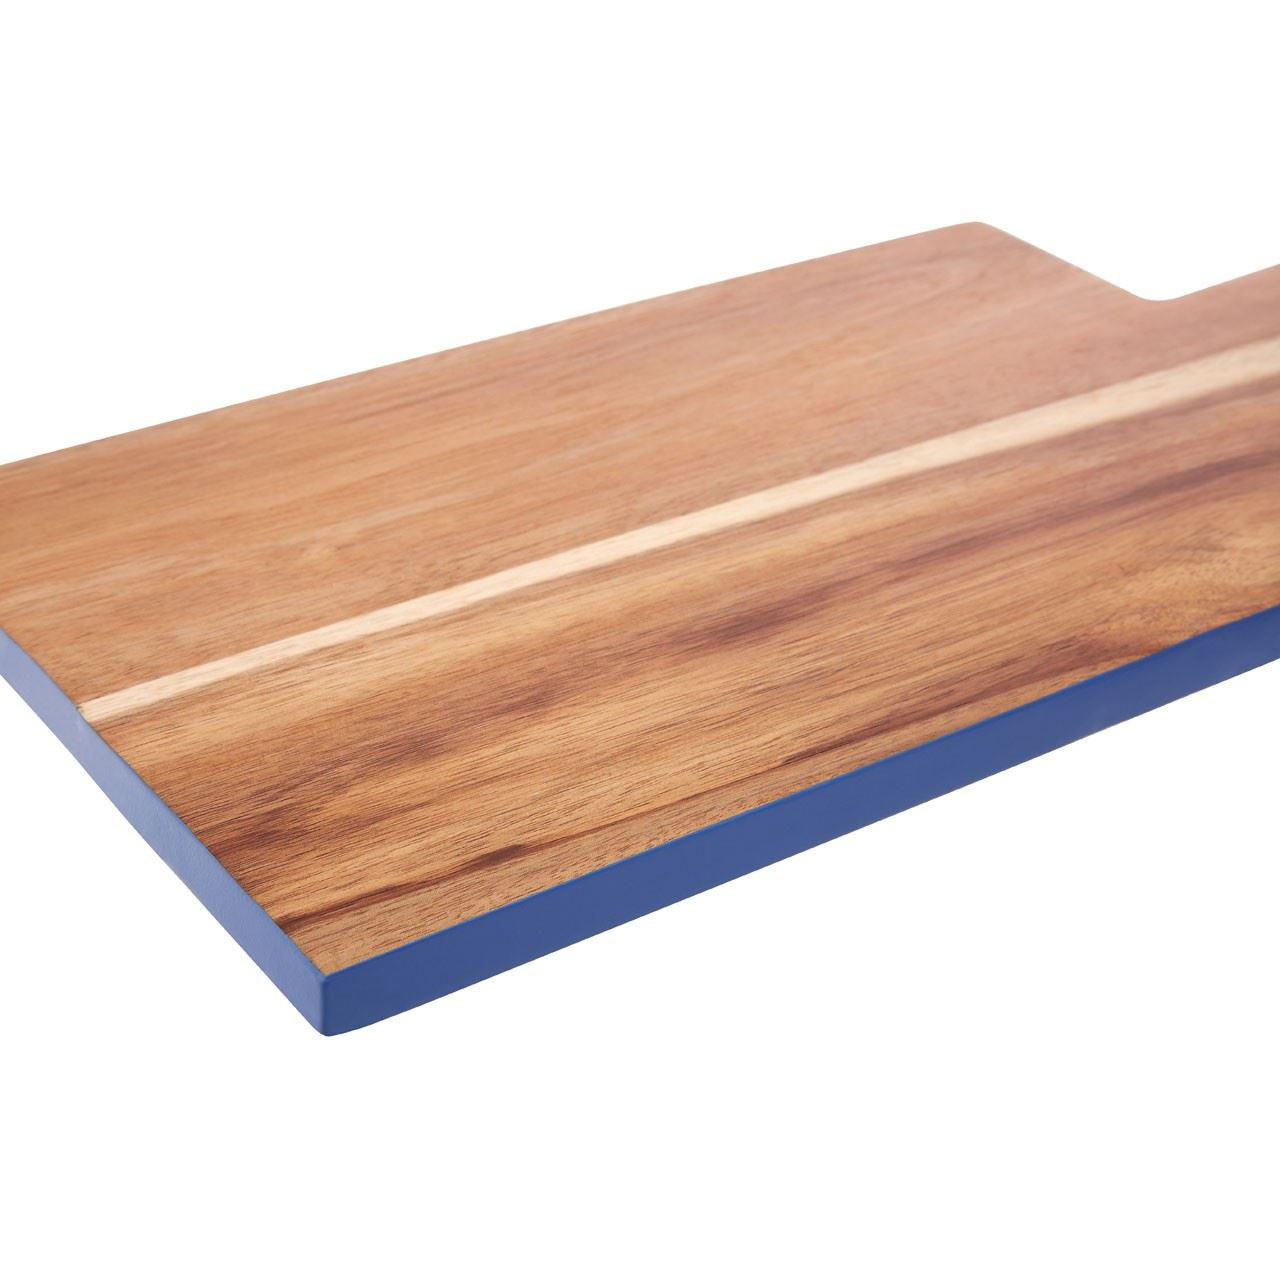 Chopping-Boards-Wooden-Cutting-Serving-Naturally-Antibacterial thumbnail 31